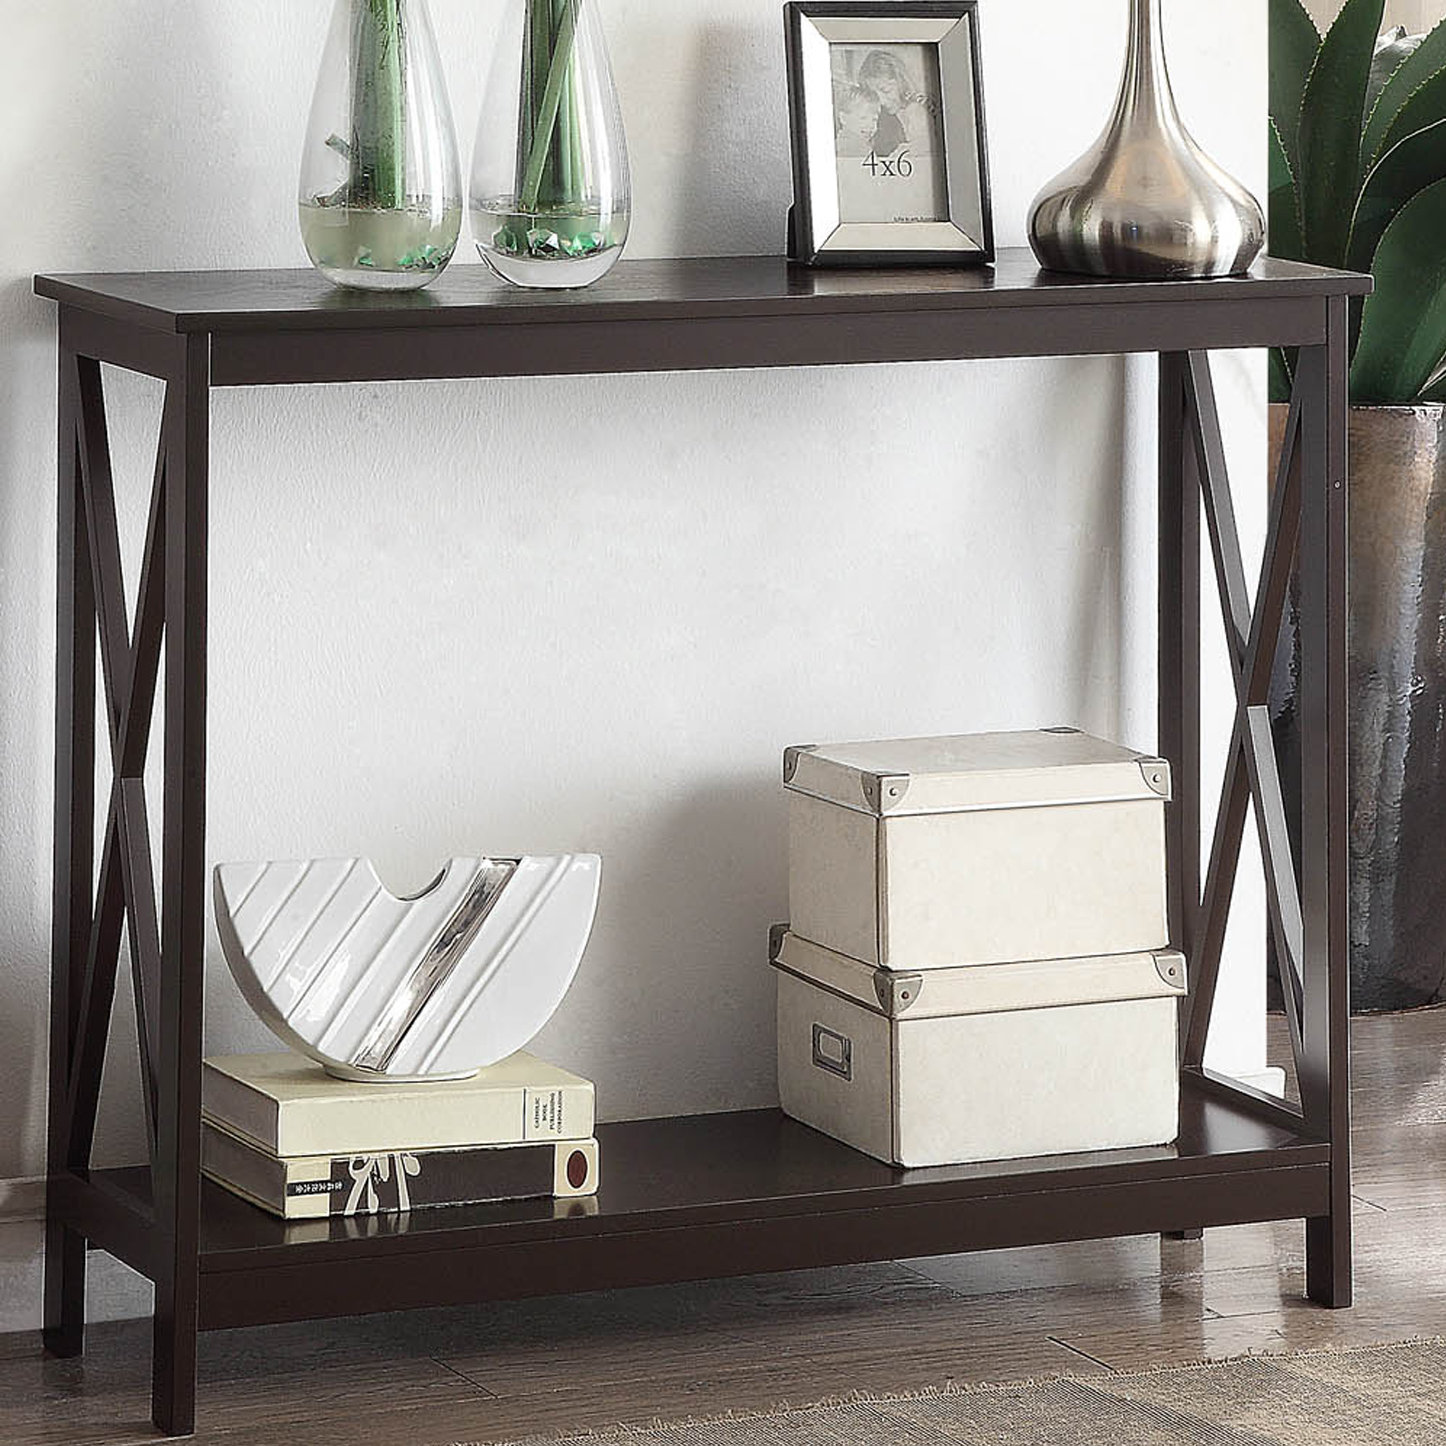 furniture outstanding britanish skinny console table for livingroom with cabinets narrow wood thin cabinet sofa tables inch high tall small hall wit accent bedroom side circular